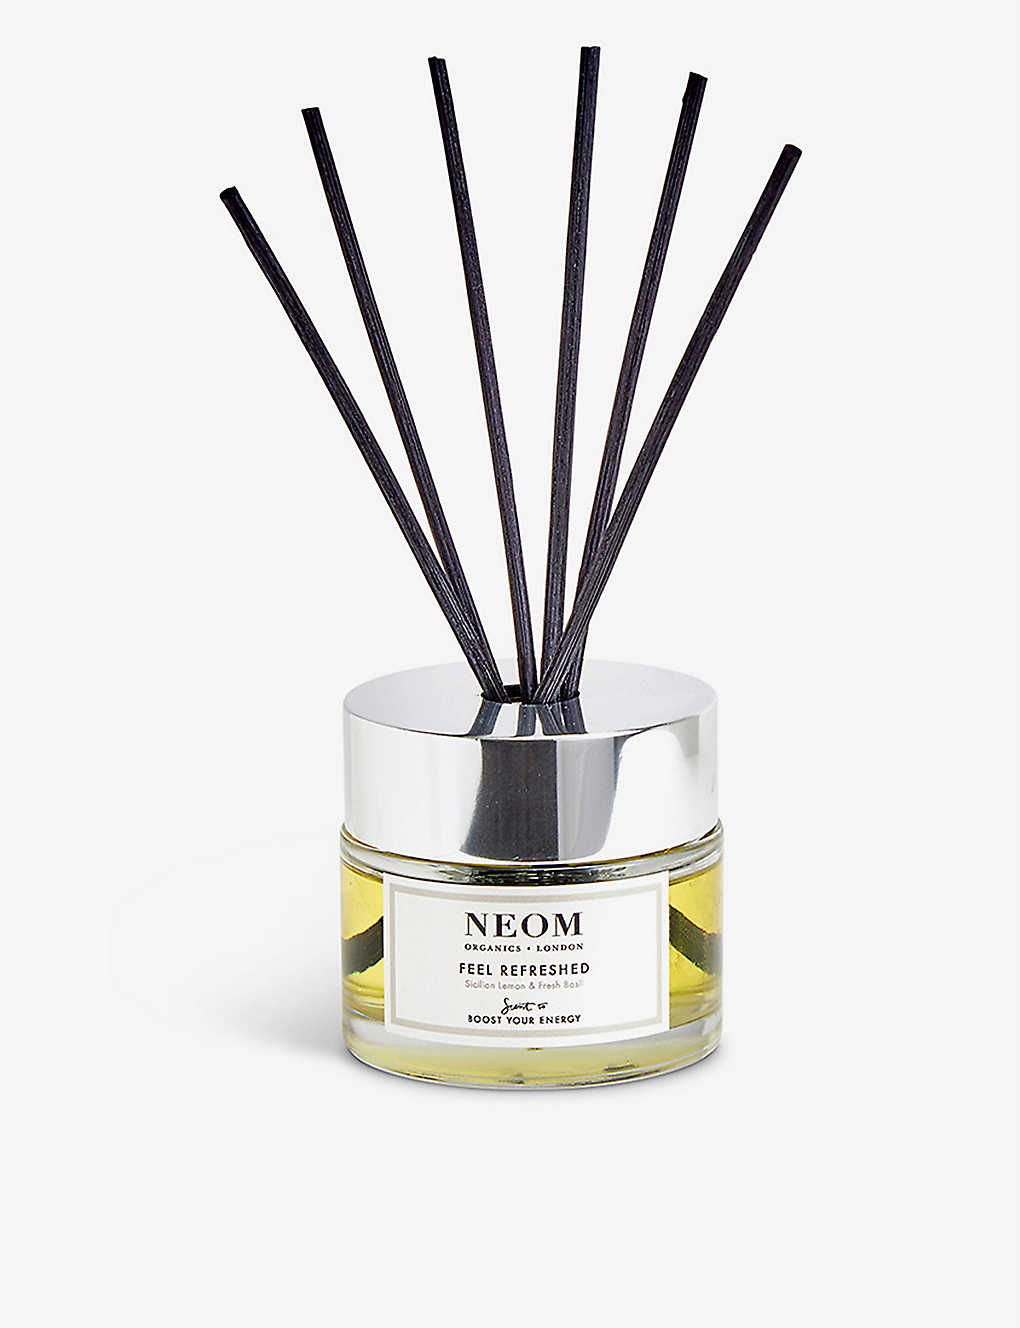 NEOM:Feel Refreshed 藤木香薰 100ml